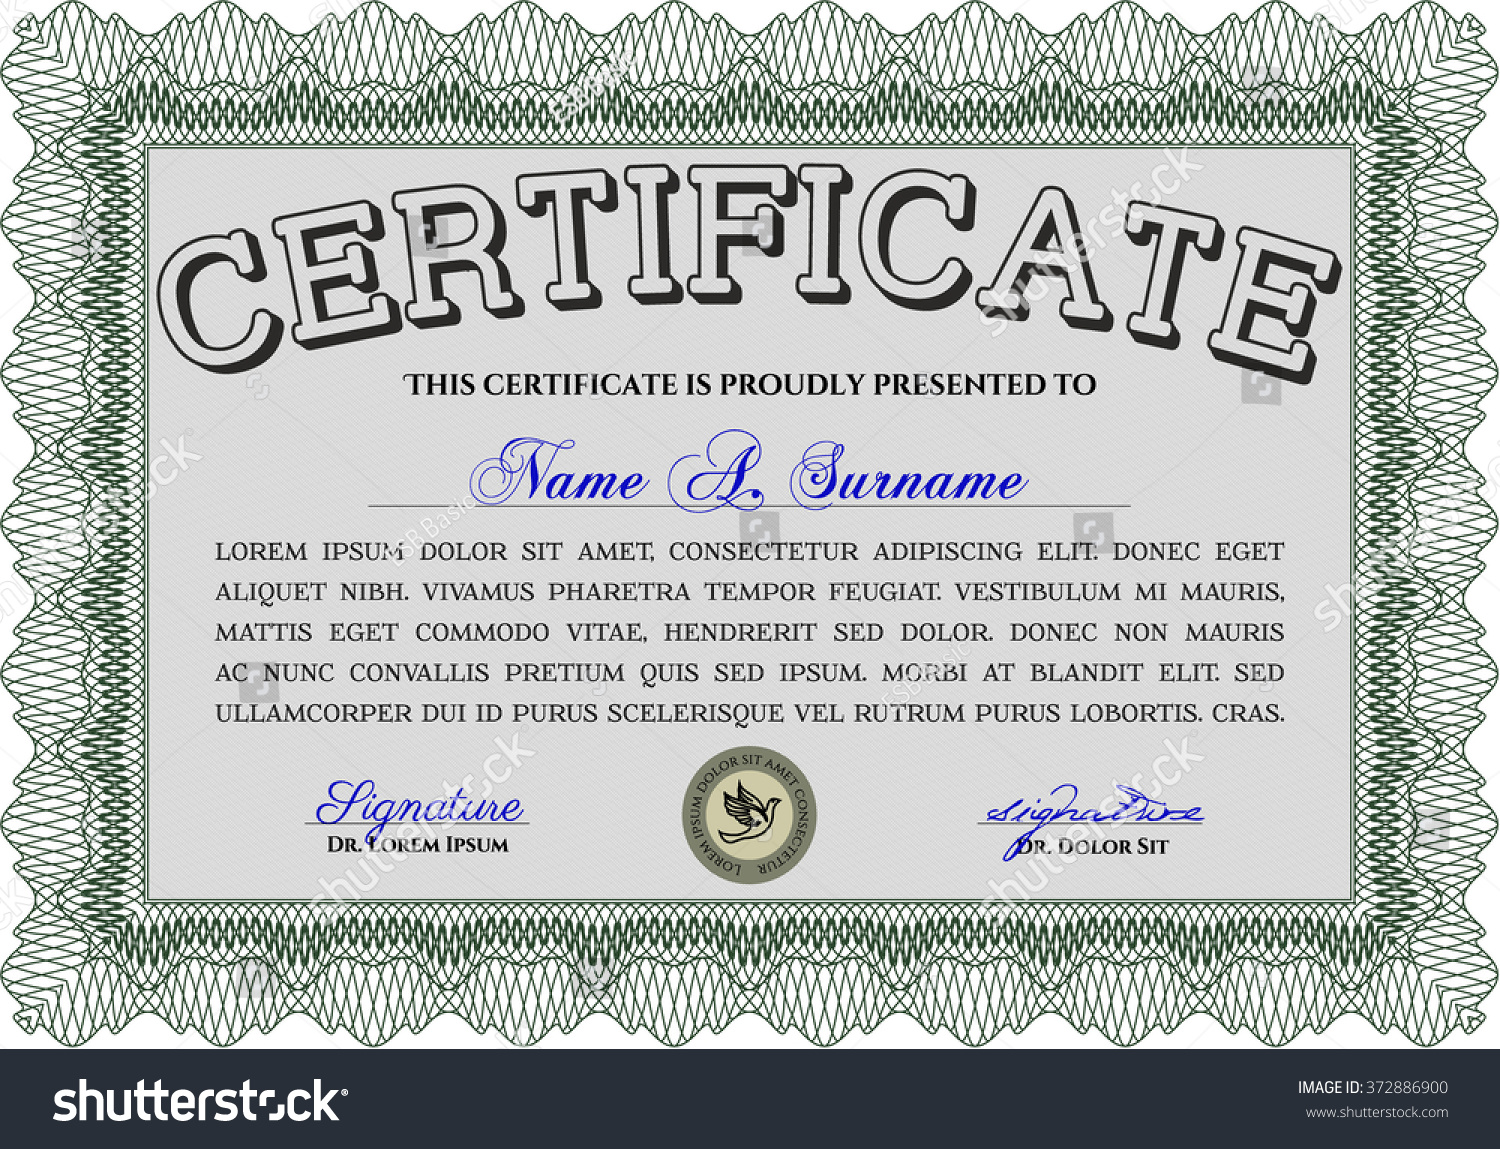 Bronze star certificate template image collections templates official certificate template images templates example free download official certificate with elegant colorful paid receipt template xflitez Image collections